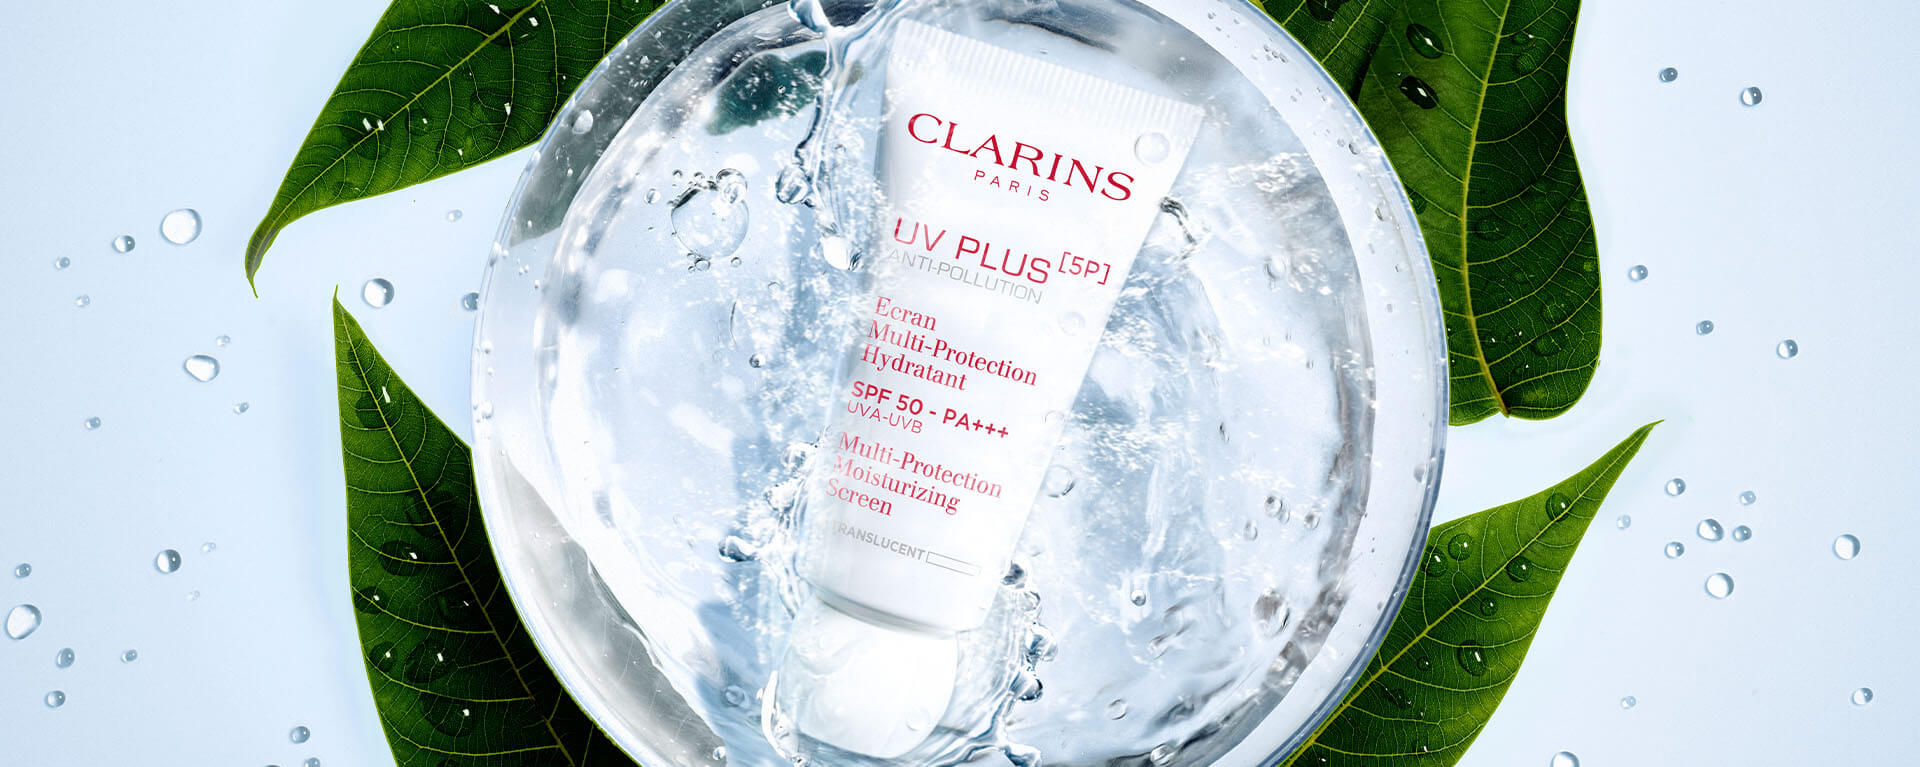 clarins-collection-banner-2